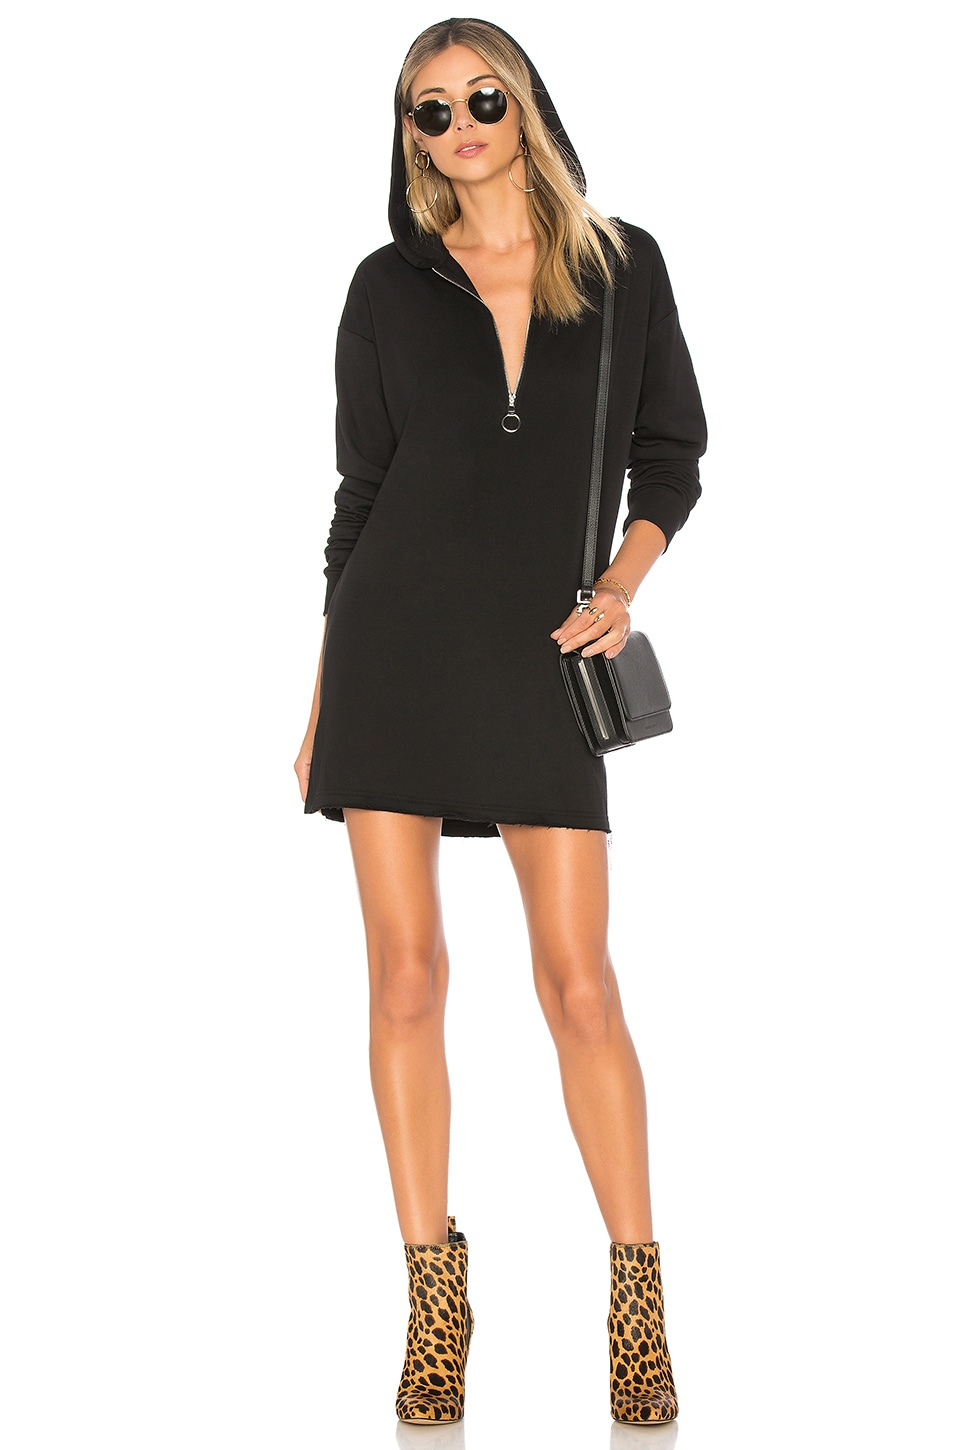 Reyna Hooded Sweater Dress